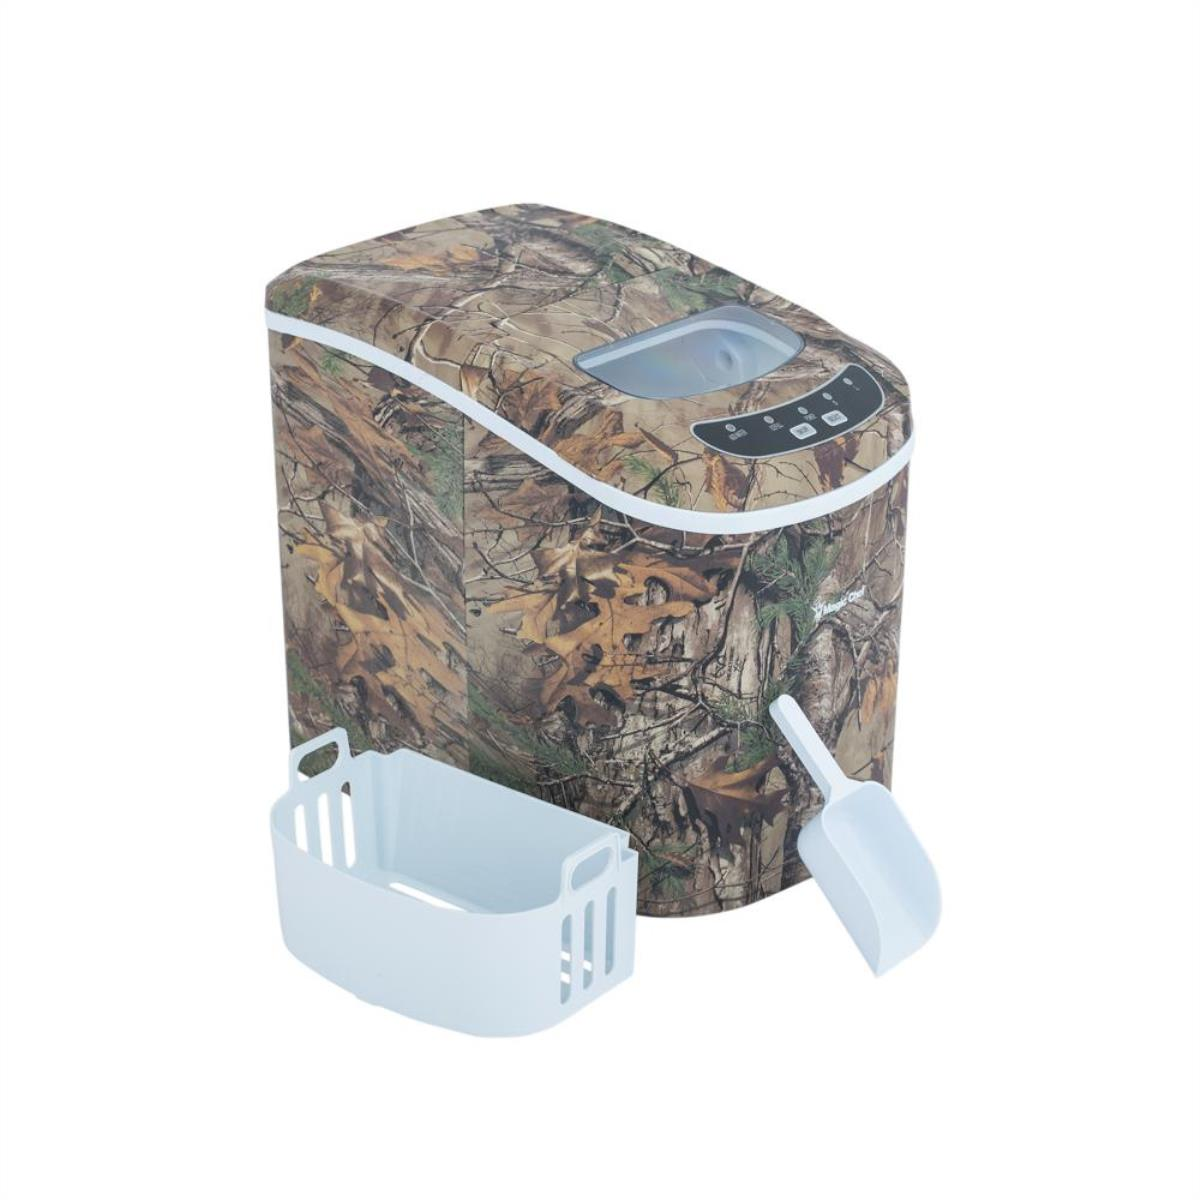 Magic Chef 27-Lb. Portable Countertop Ice Maker with Authentic Realtree Xtra Camouflage Pattern